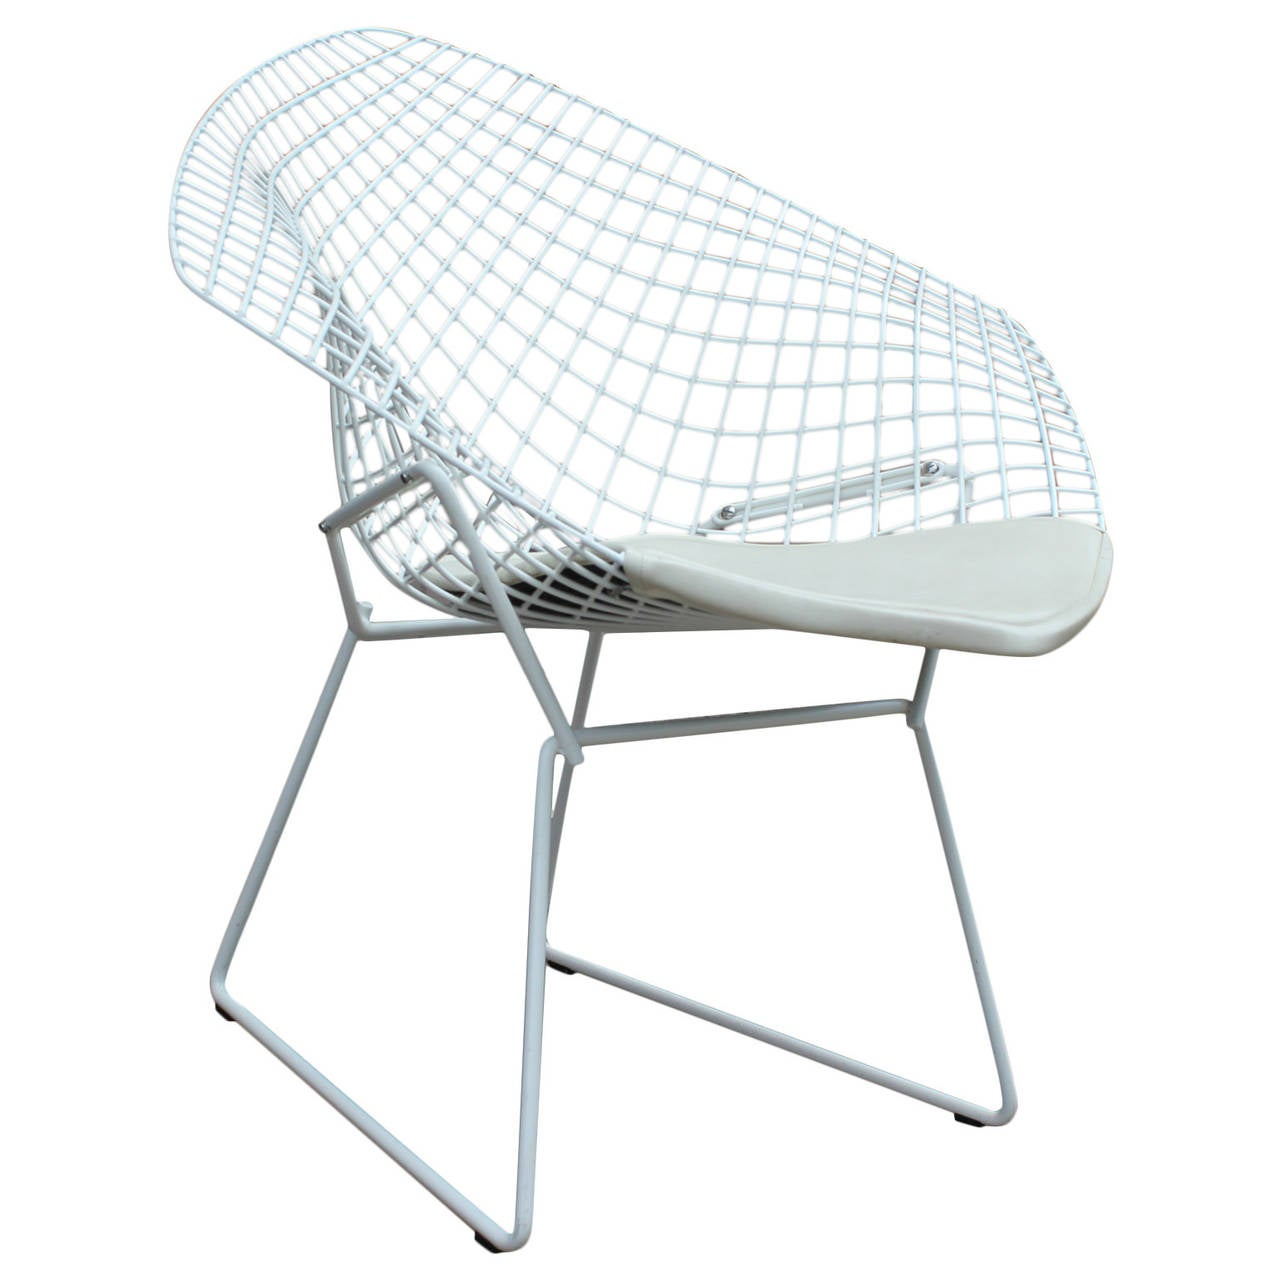 Bertoia diamond chair dimensions - White Diamond Chair By Harry Bertoia For Knoll 1